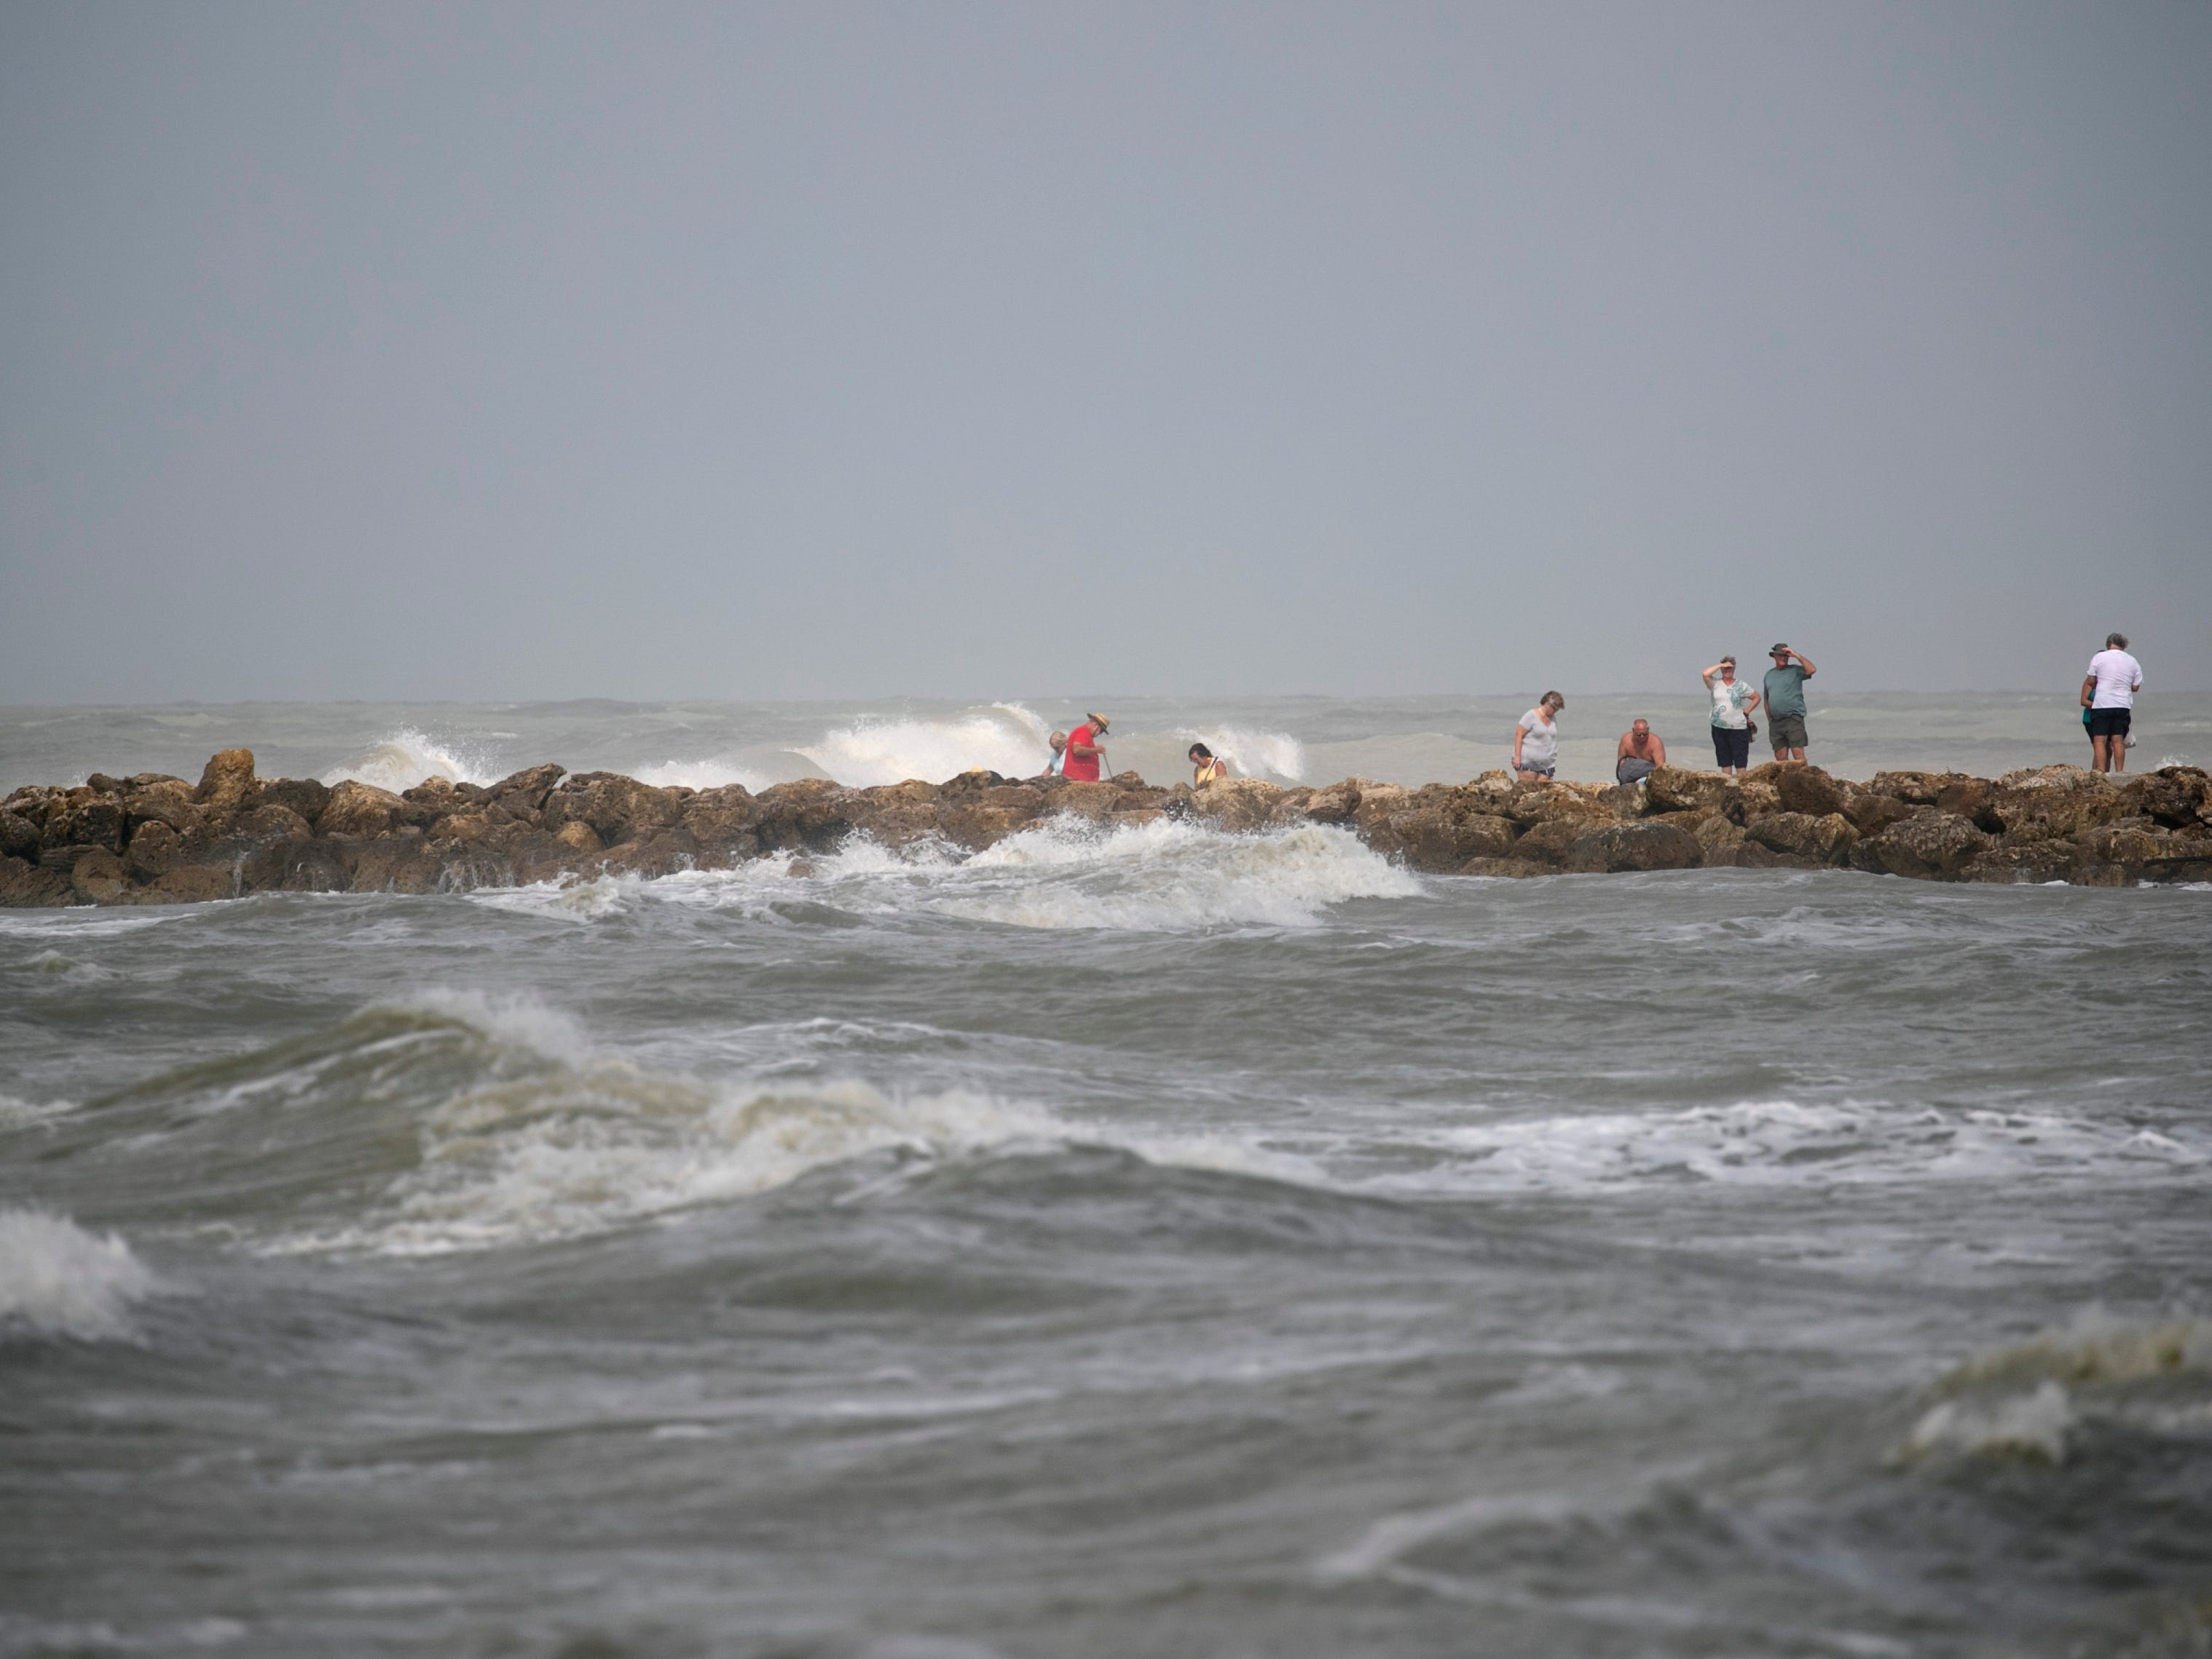 Visitors to the beach at Blind Pass on Captiva watch the waves crash onto the shore Wednesday as Hurricane Michael churned in the Gulf of Mexico heading for the Florida Panhandle.